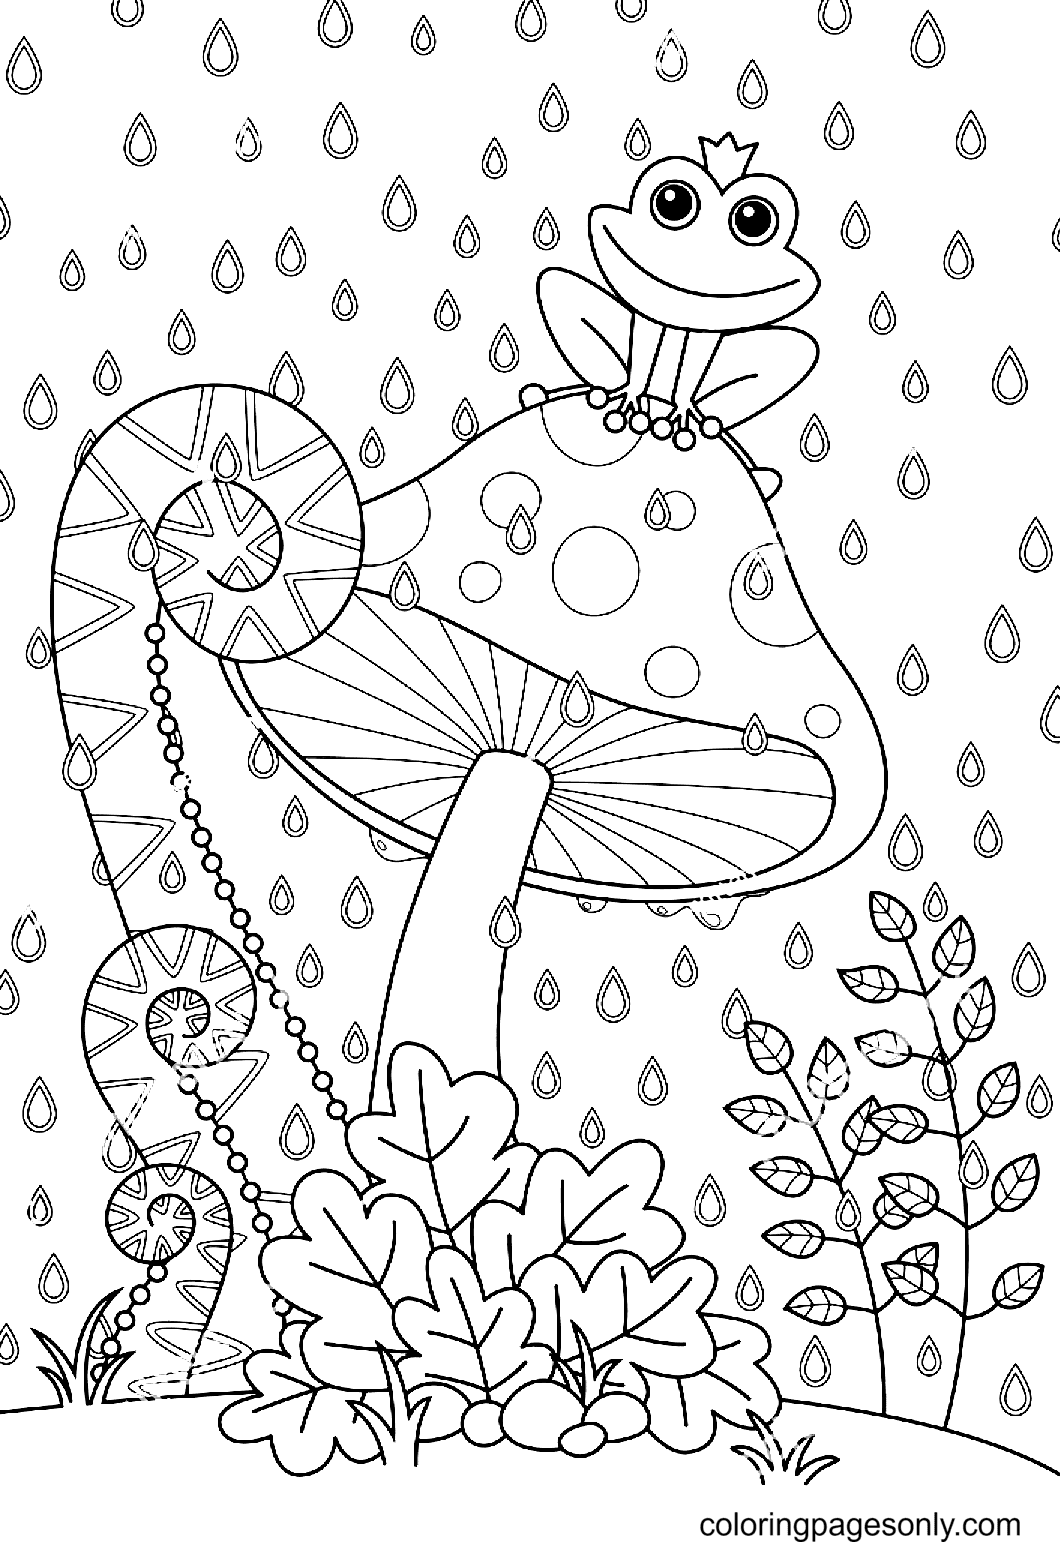 Mushroom with Funny Frog Coloring Page